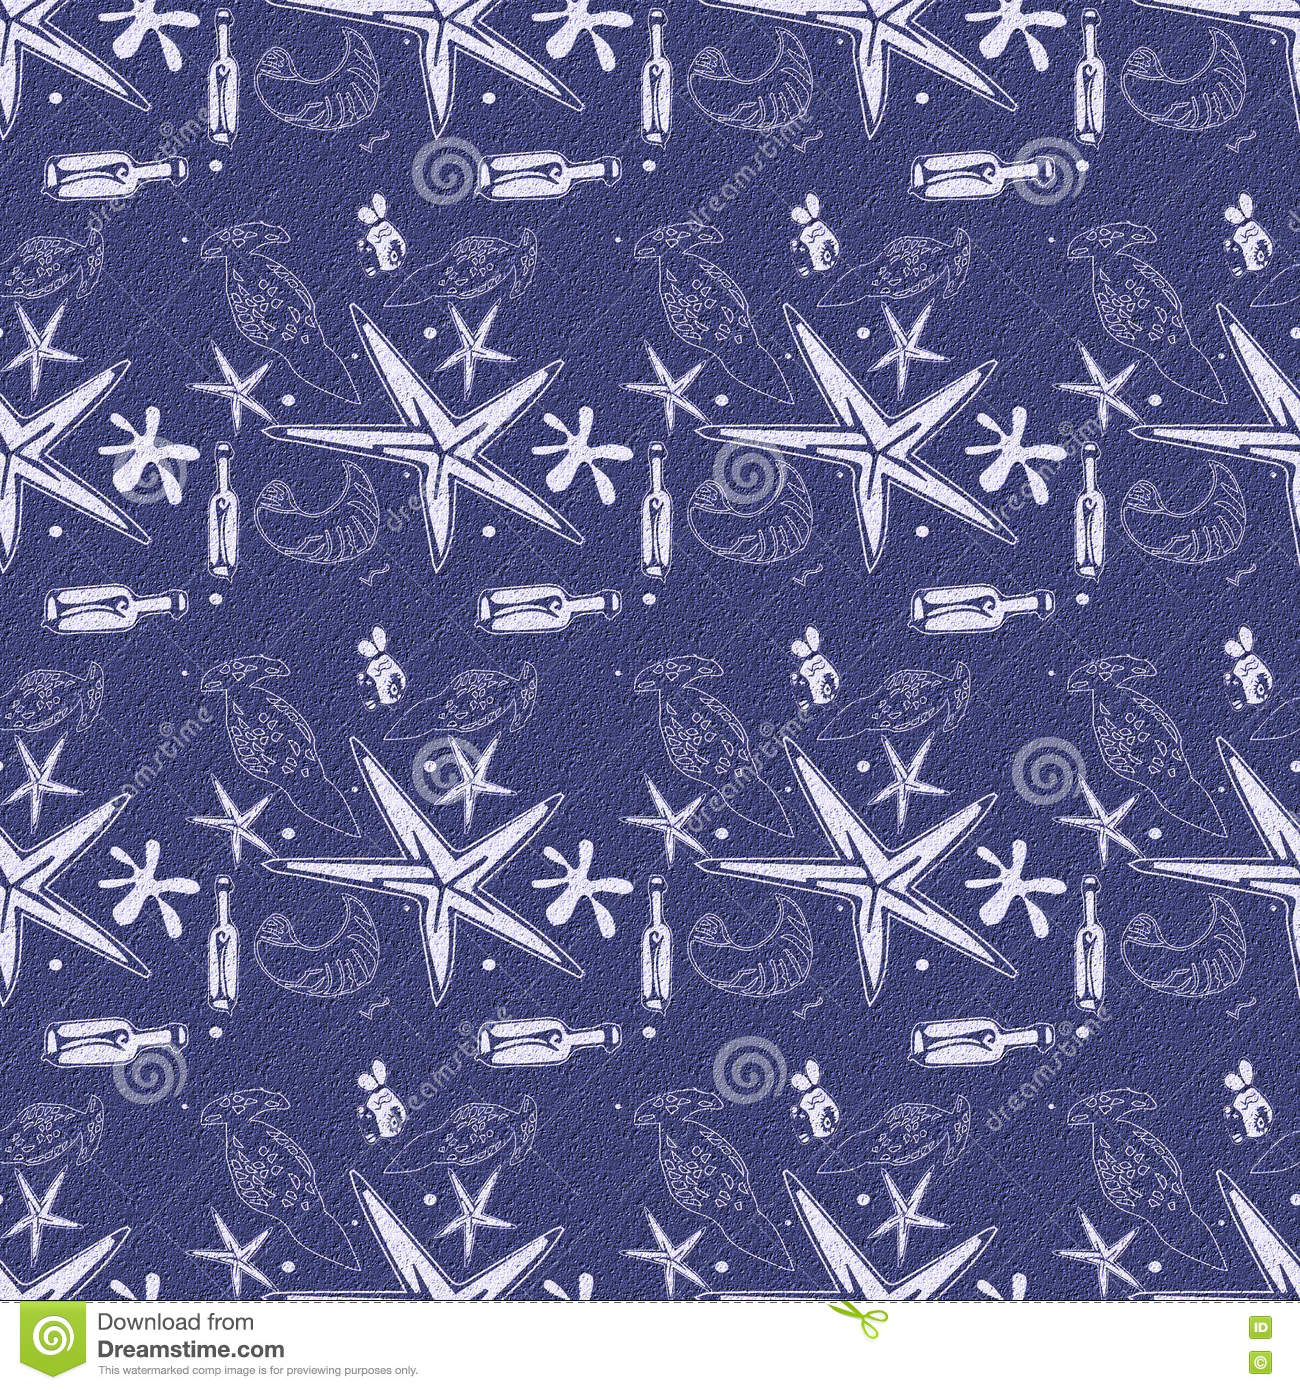 Texture Summer Bottles Sea Star Fish And Shell Blue Seamless Pattern